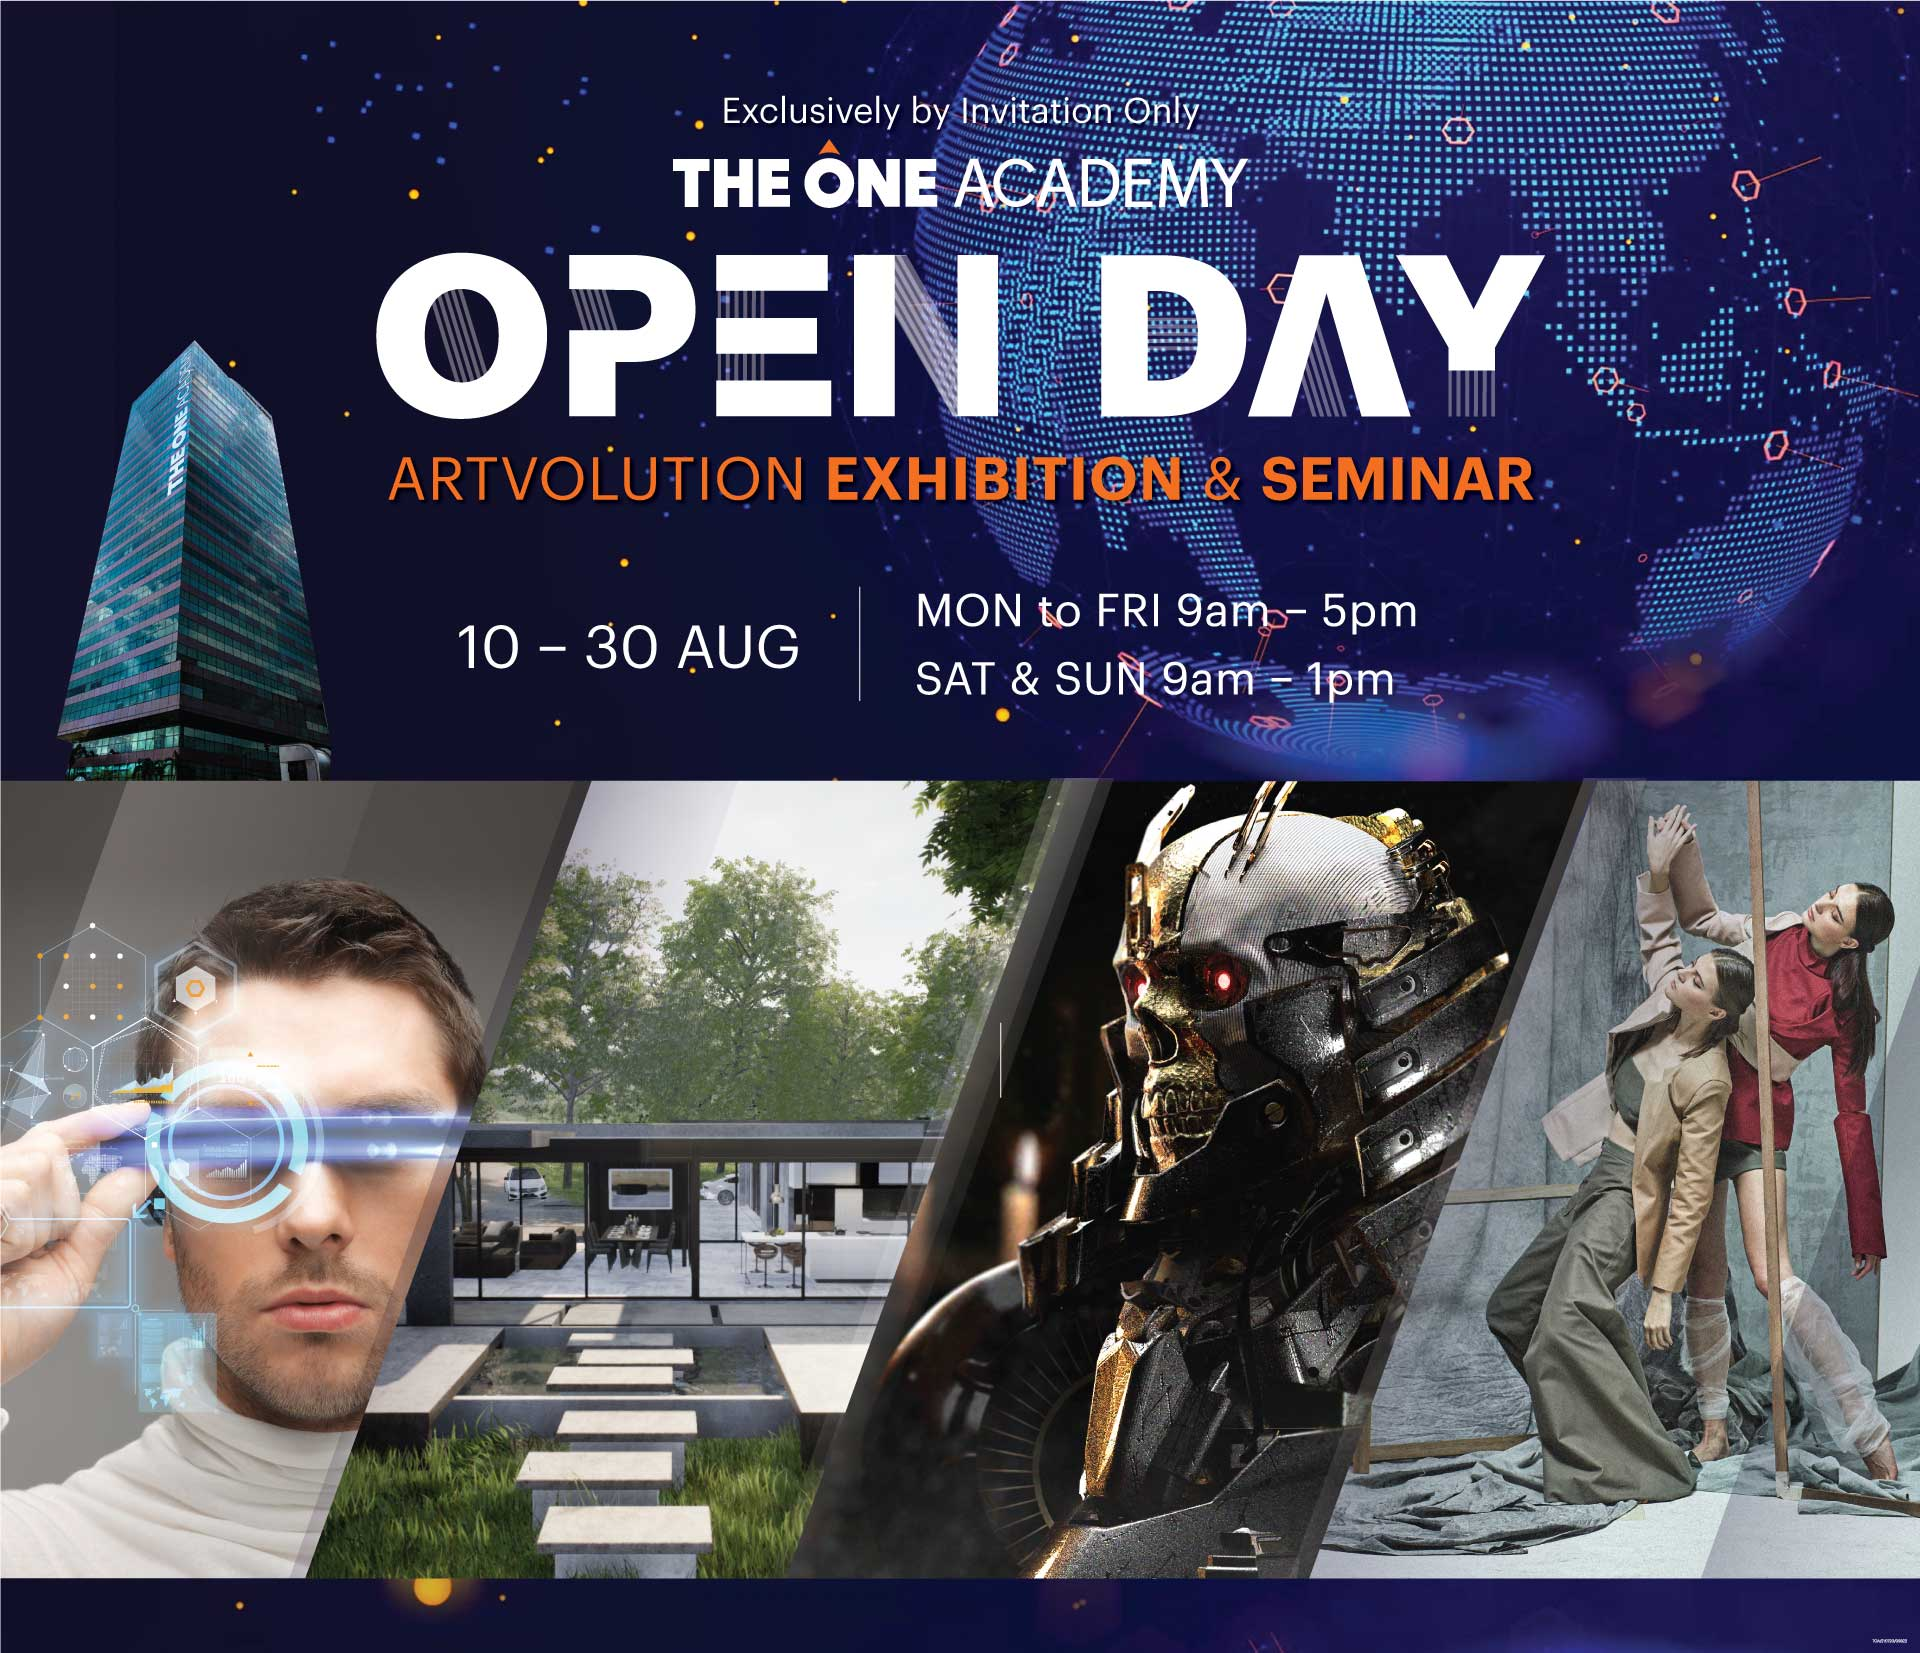 The One Academy Open Day 2020